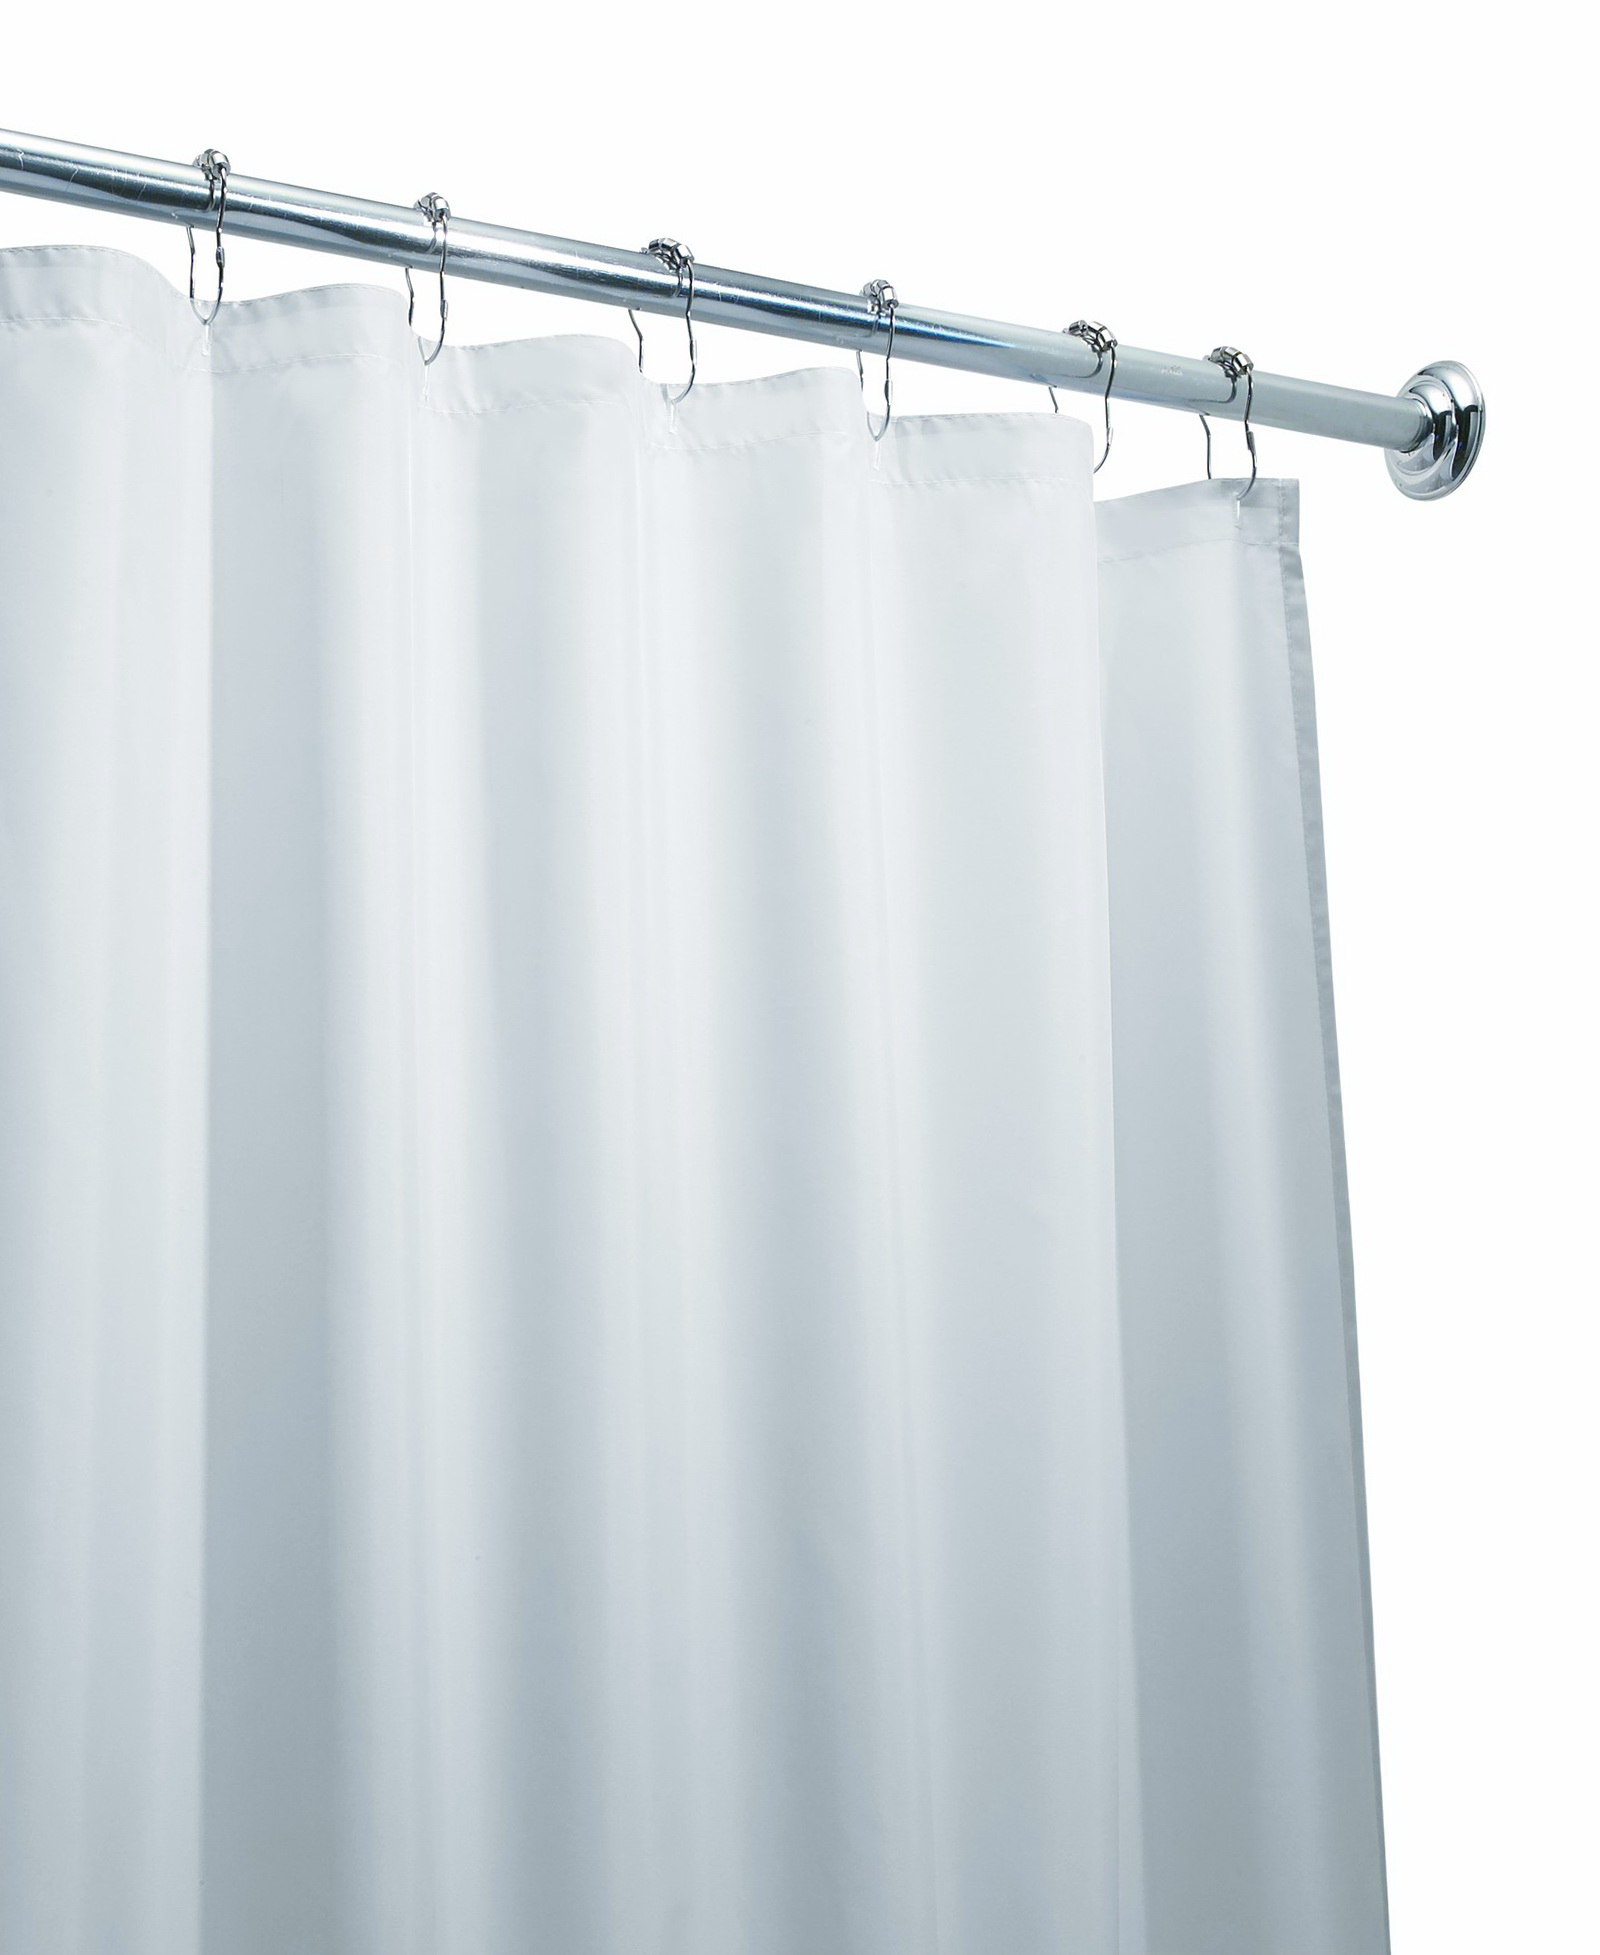 Oversized Shower Curtain Liner